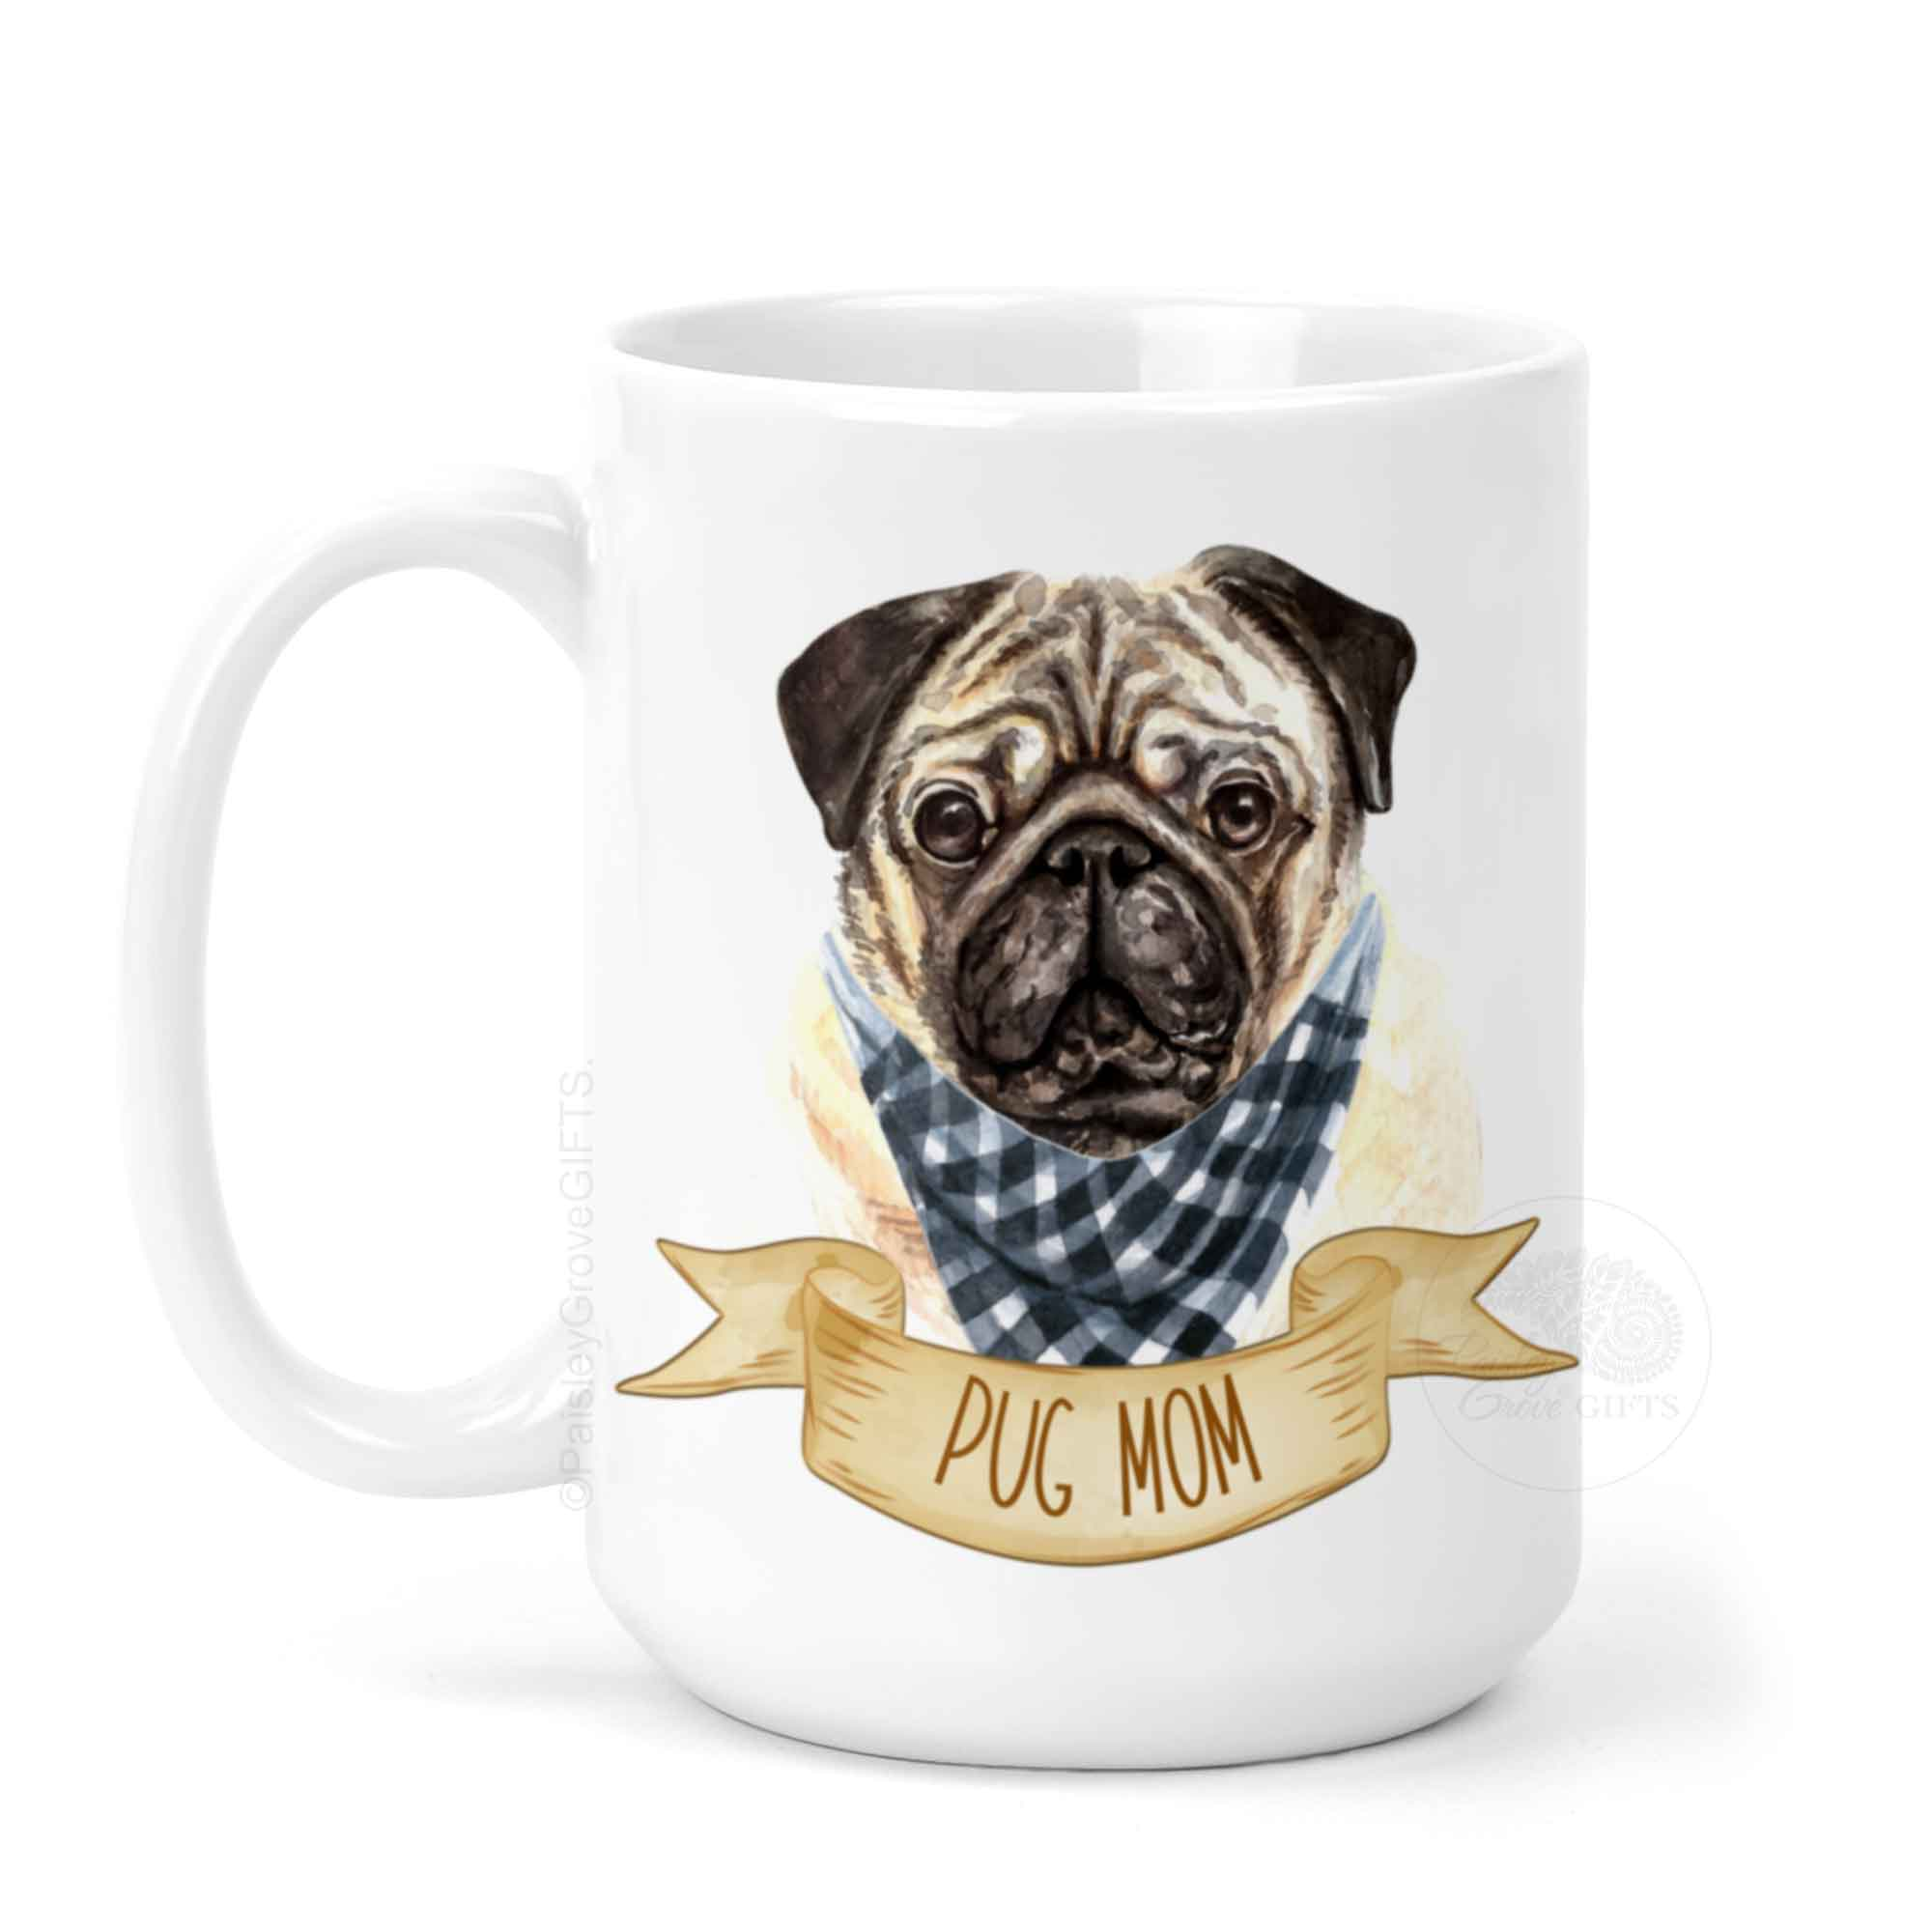 CopyrightPaisleyGroveGIFTS P009c1 Pug Mom Ceramic Coffee Mug in 11 or 15 oz with Watercolor Pug wearing bandana